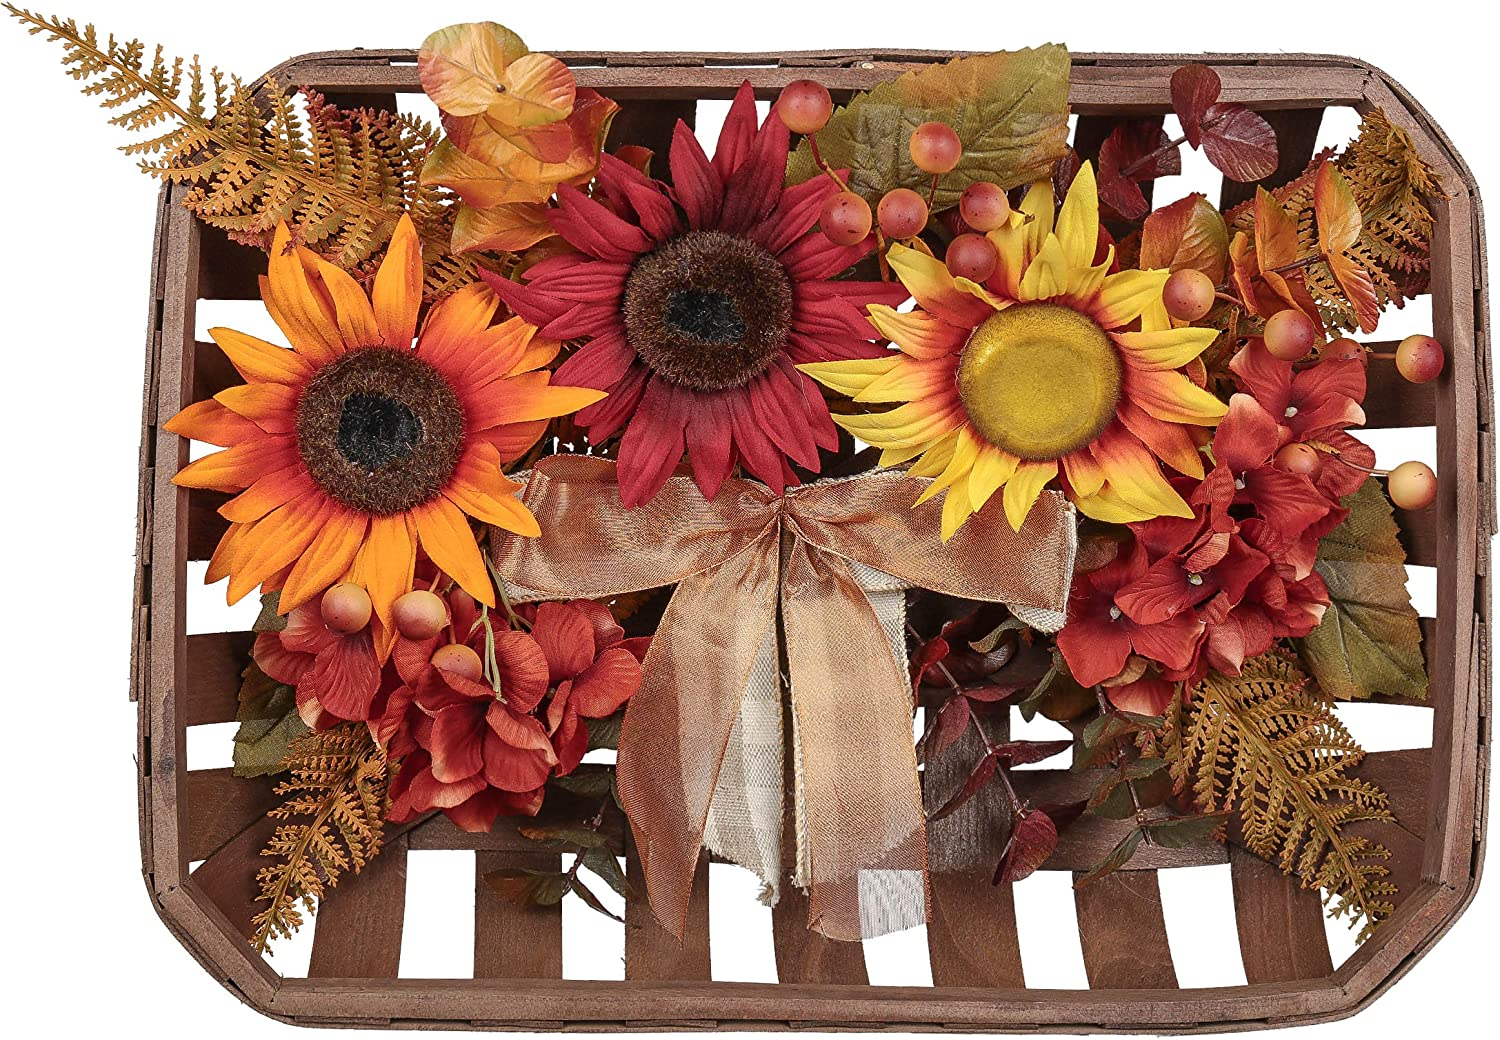 Valery Madelyn Decorative Fall Wreath for Home Decor, Tobacco Basket Wreath with Sunflowers Berry Clusters Bows for Farmhouse Rustic Wall Thanksgiving Halloween Christmas Indoor Window Decoration